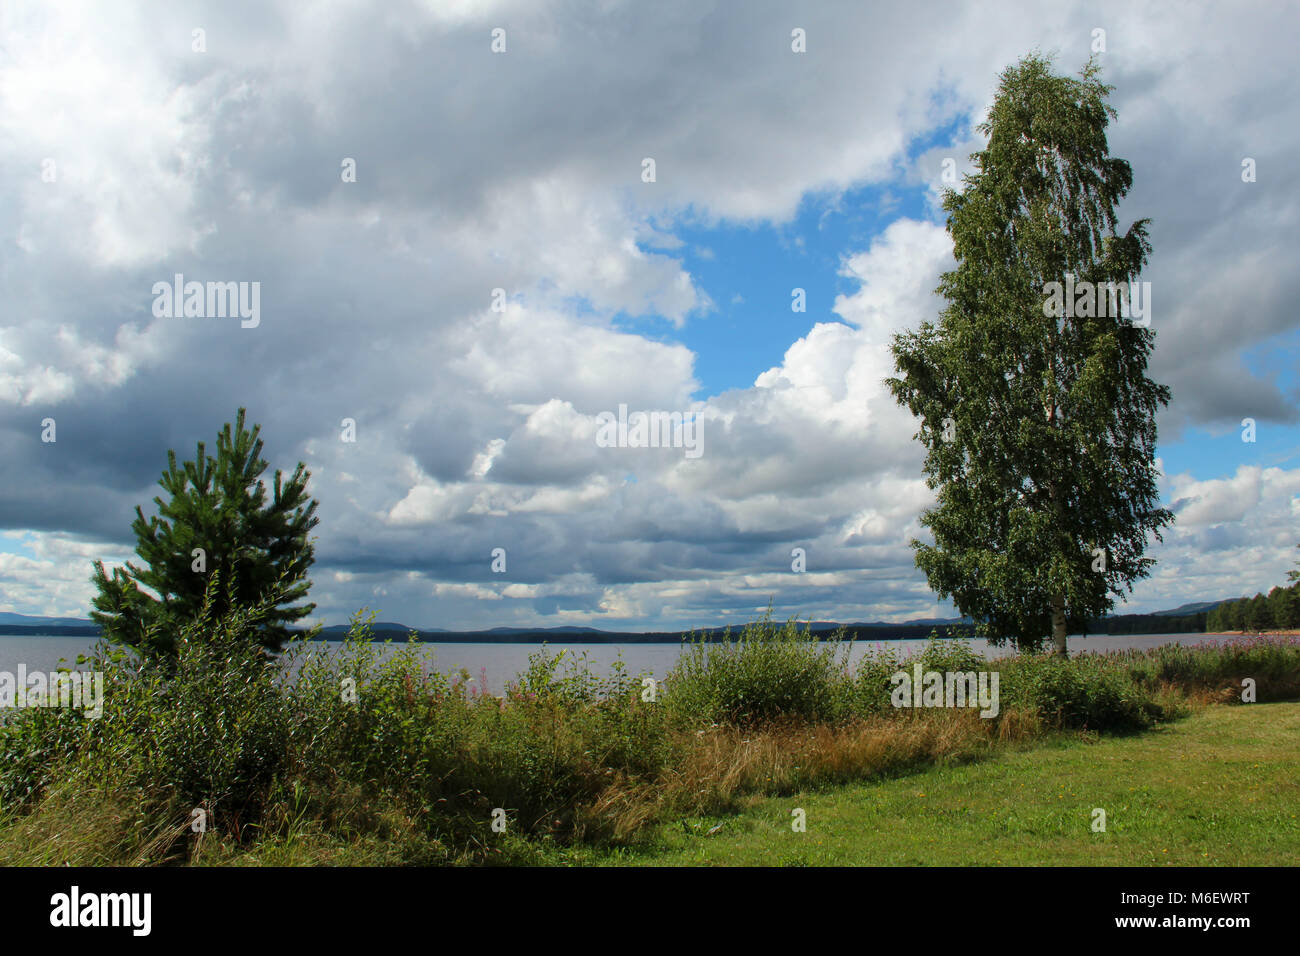 Beach by Orsa lake in Dalarna, Sweden, in August. - Stock Image